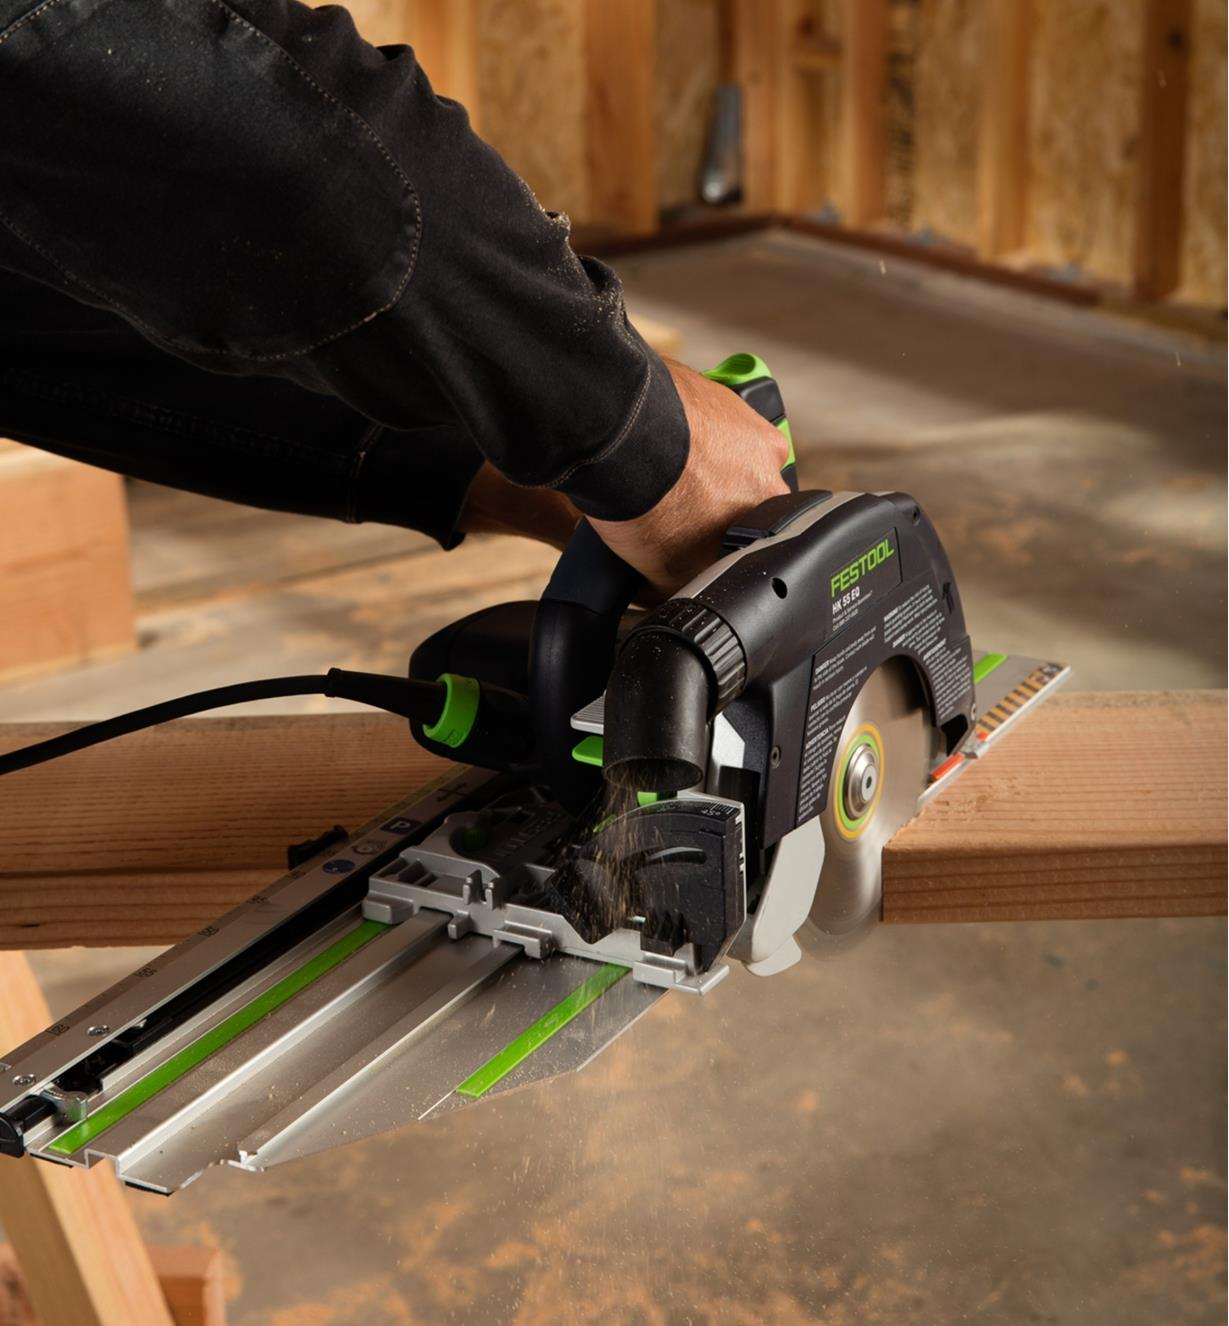 Cutting a miter across a board using the HK 55 EQ Circular Saw Set